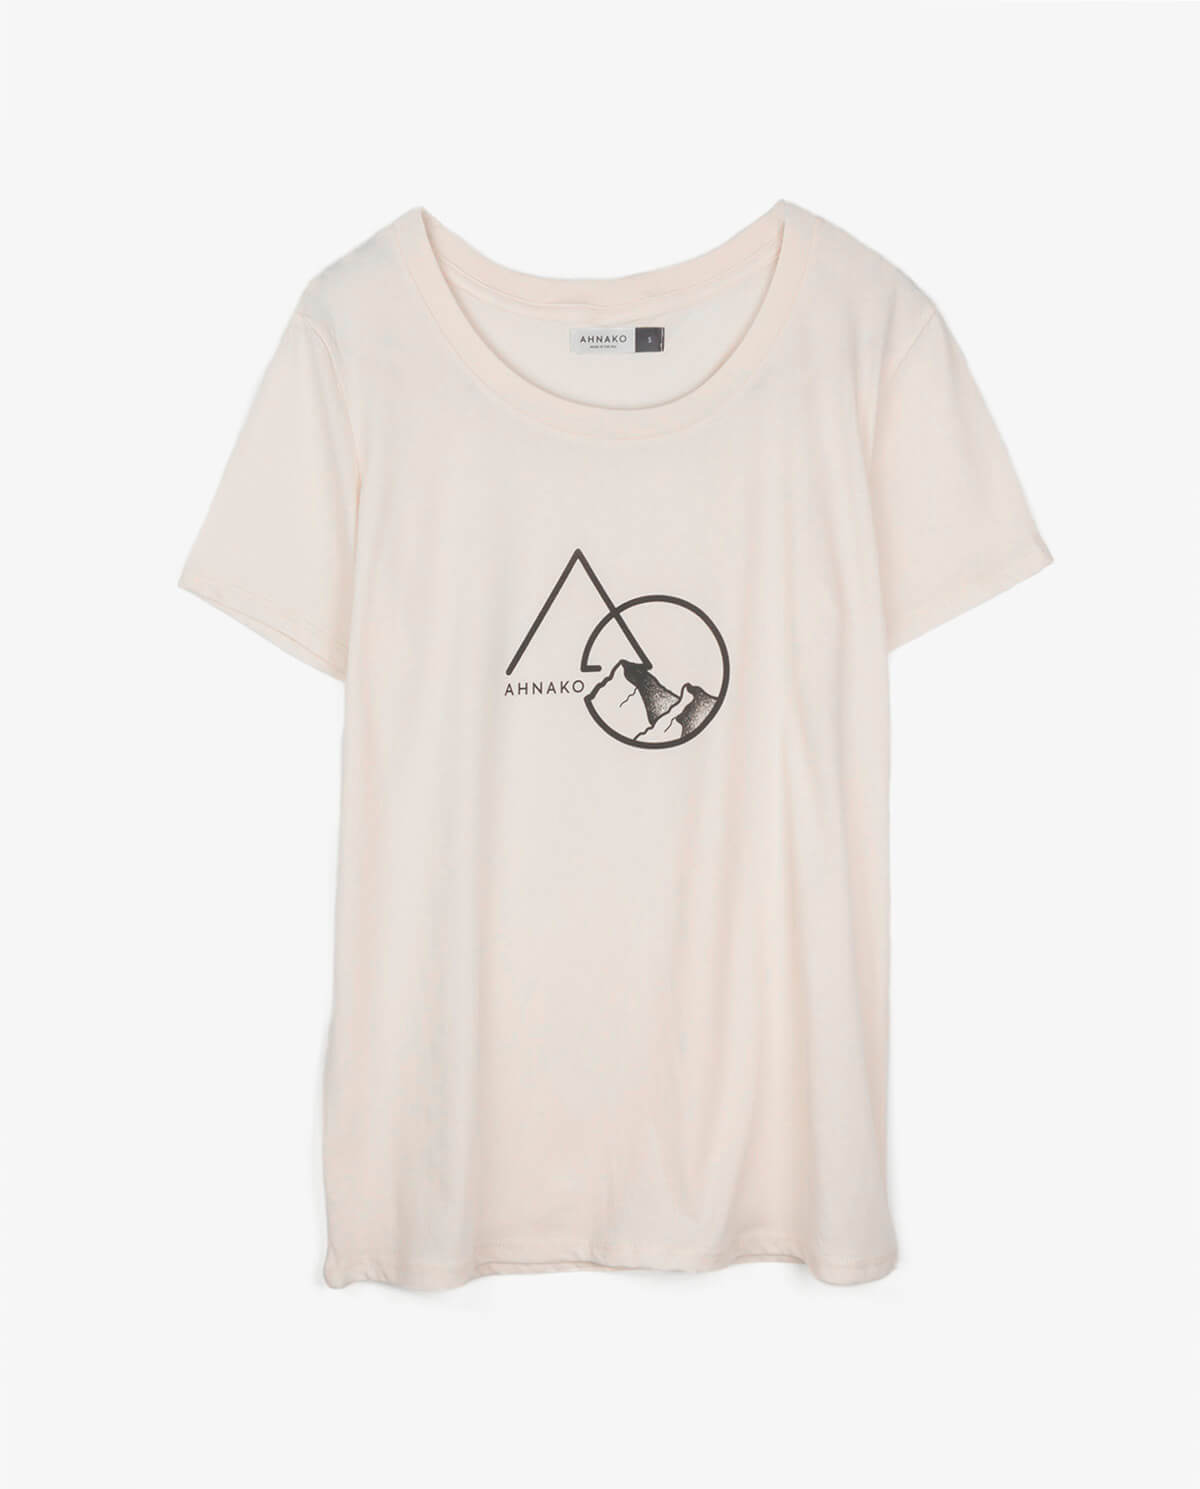 Ahnako Women's Mountains - Rose Quartz T-shirt